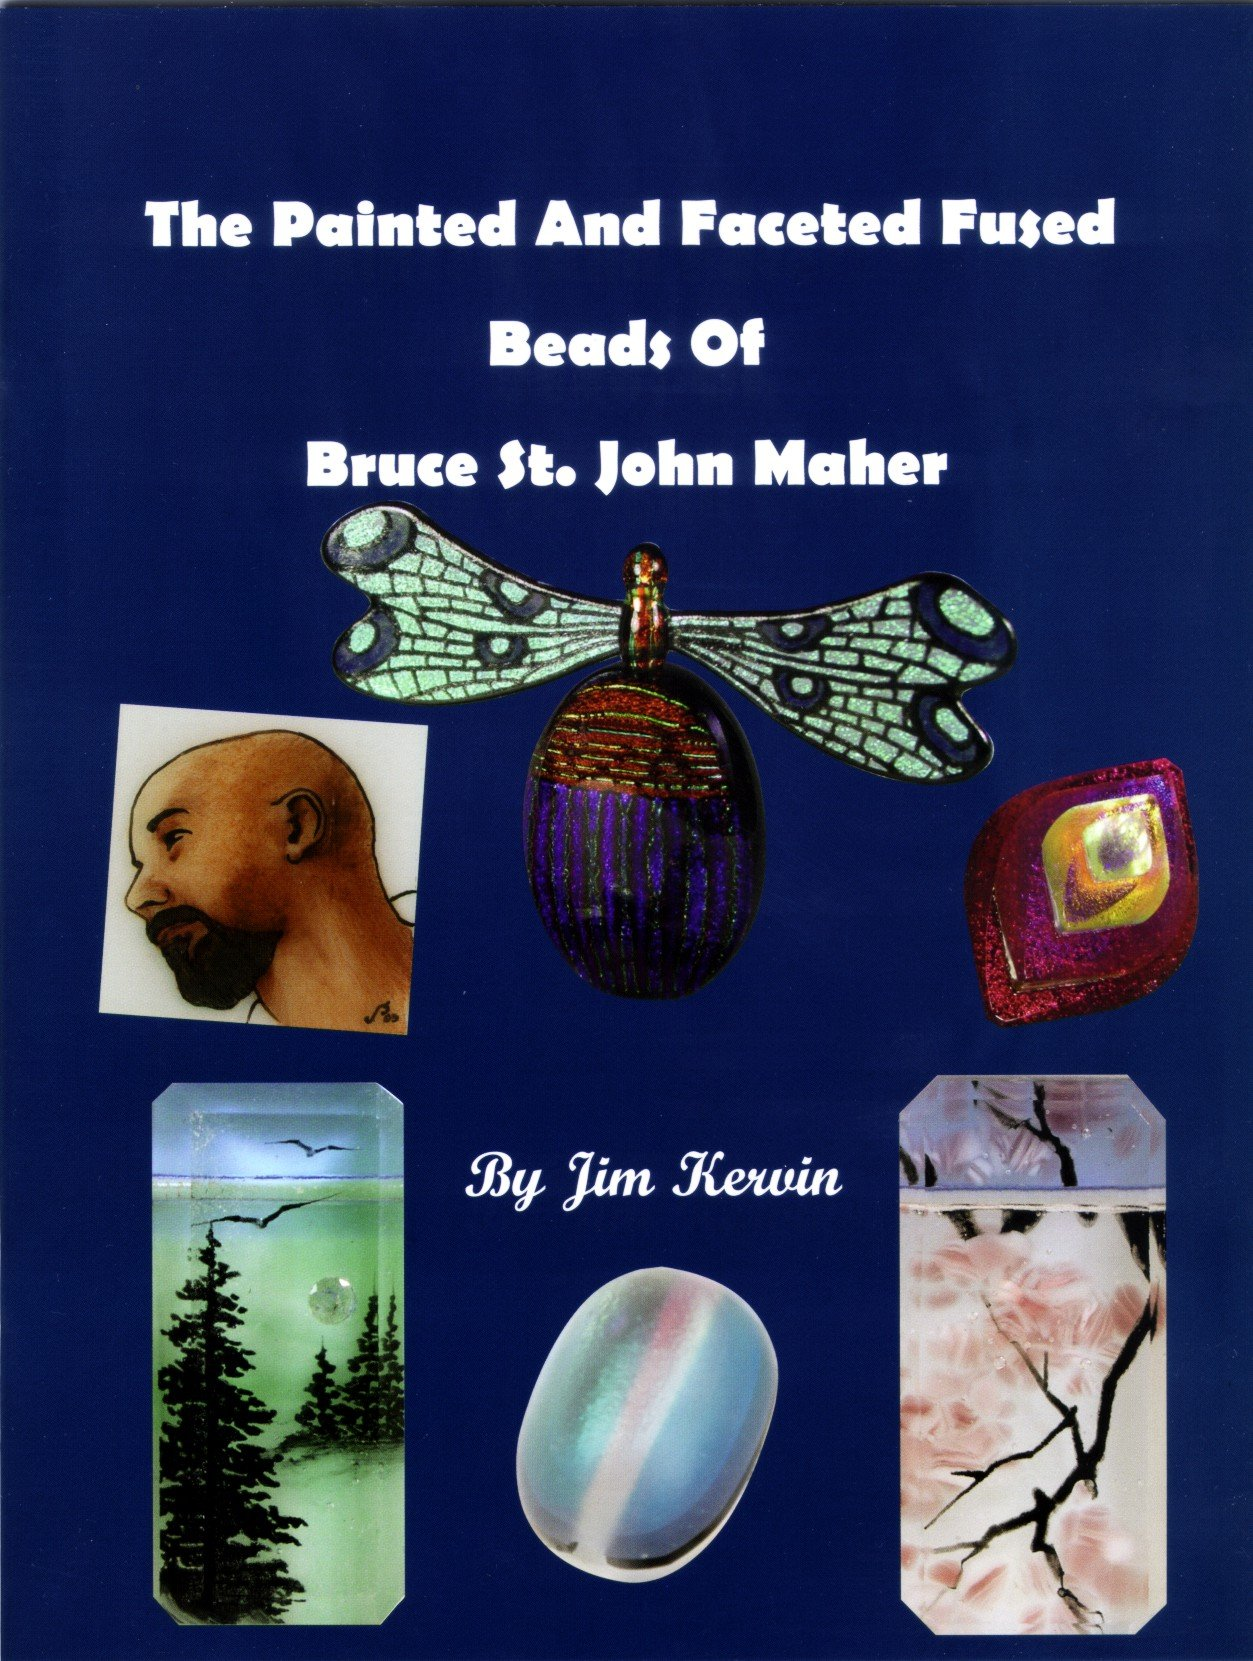 The Painted and Faceted Fused Beads of Bruce St. John Maher